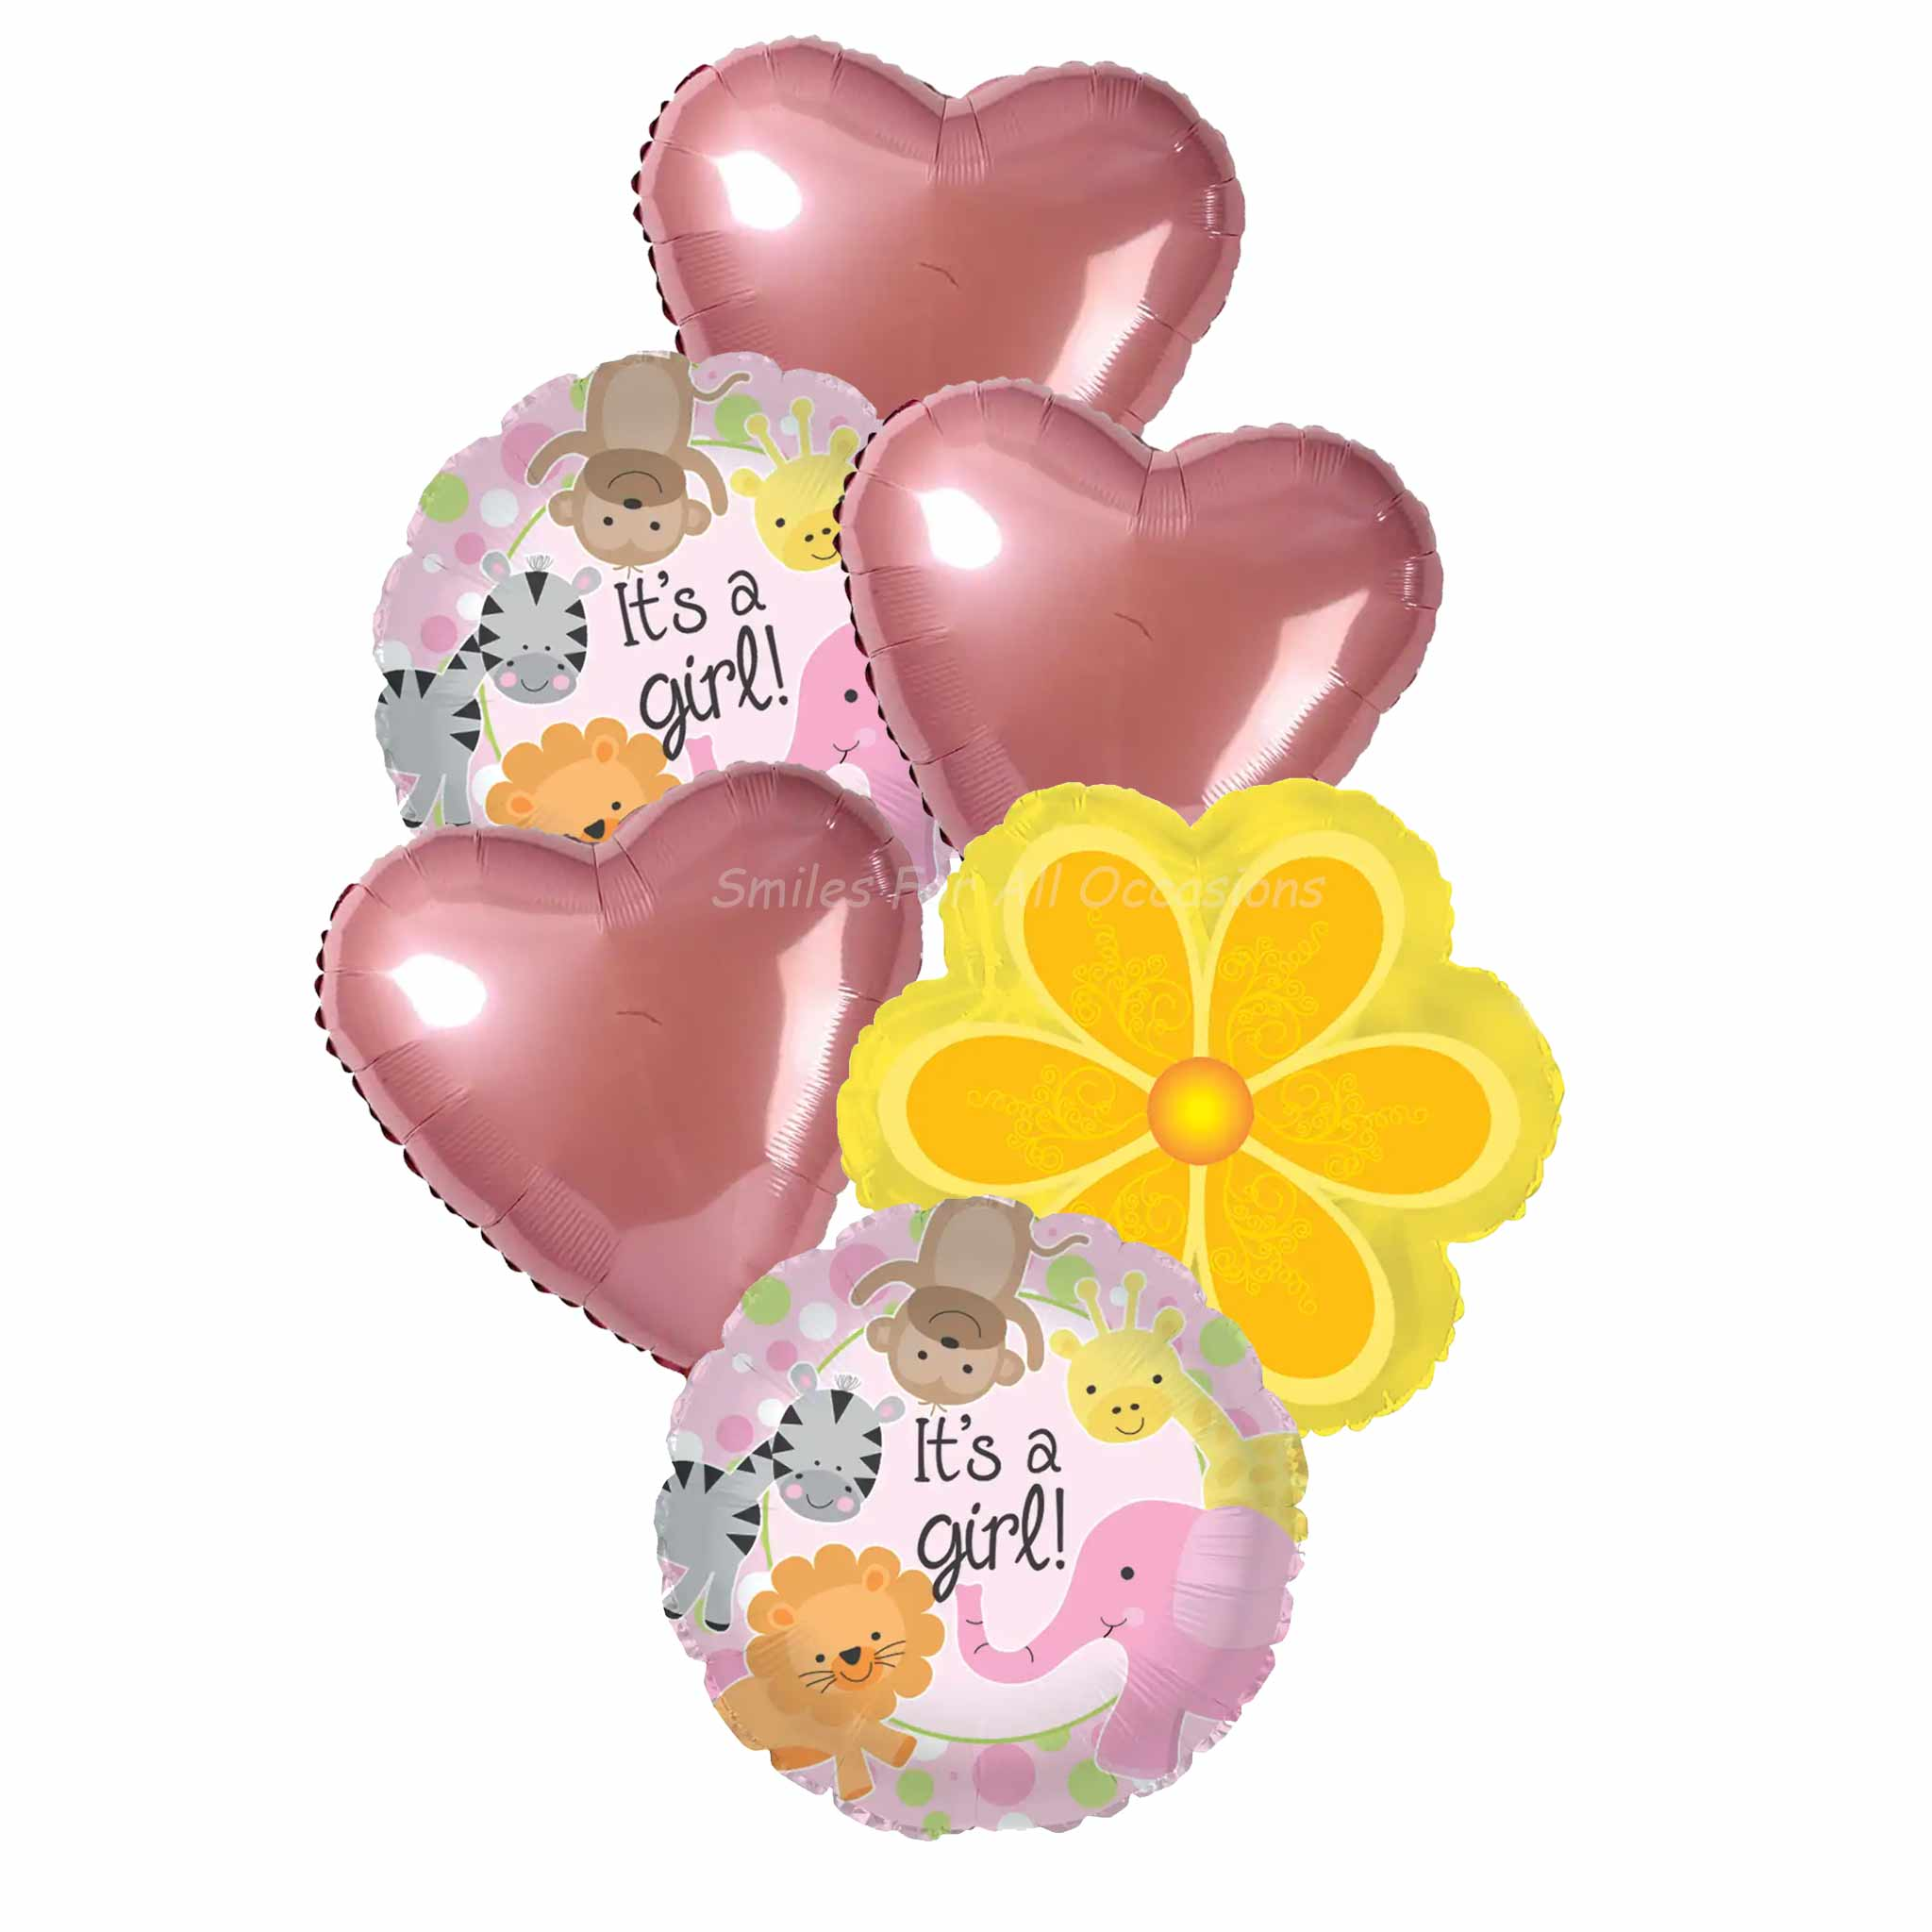 6 It's A Girl Pink Balloons, Pink Hearts, Yellow Flower Balloons